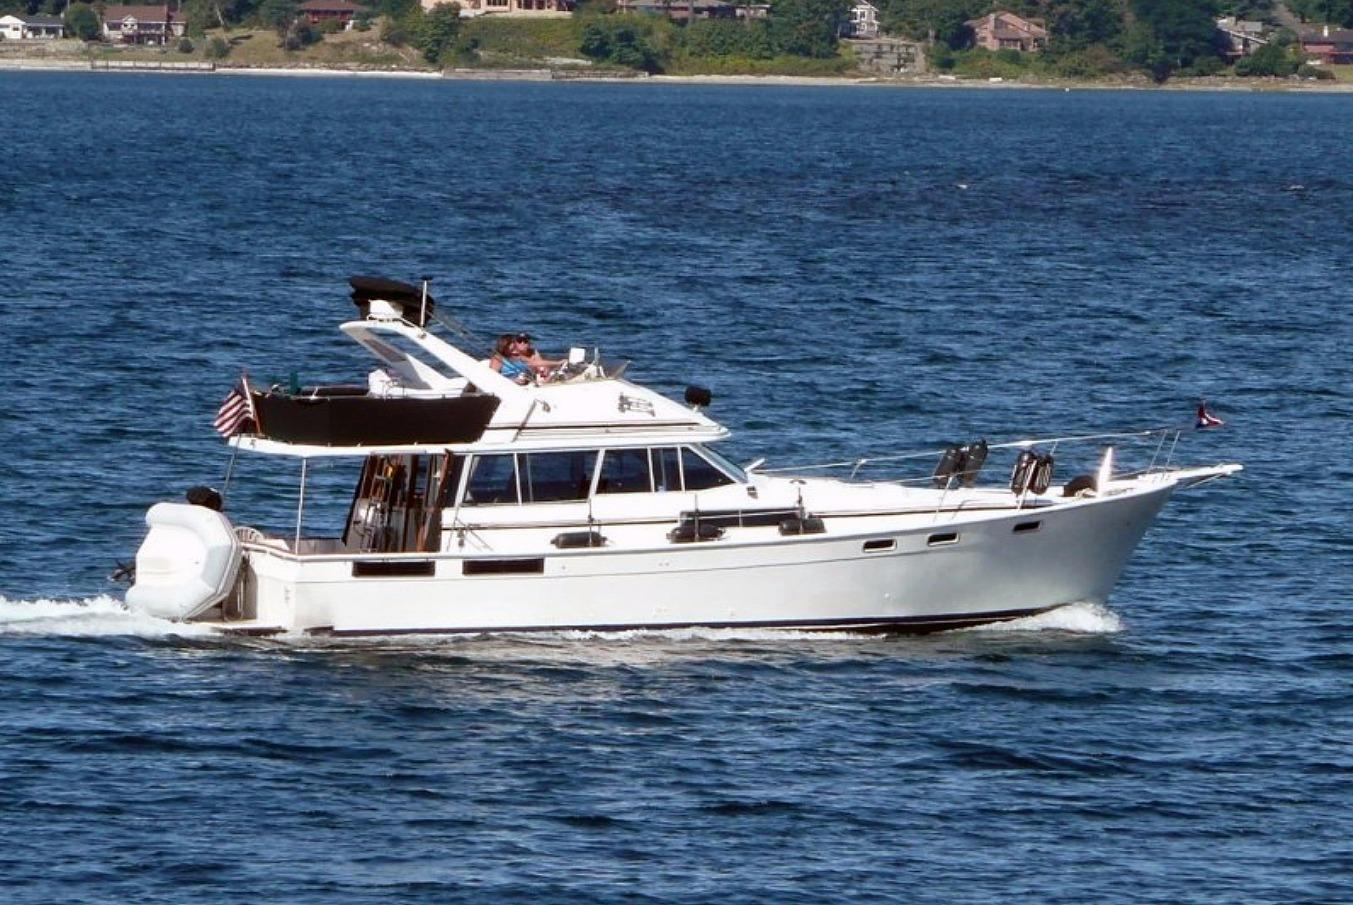 1987 Bayliner 3870 Motoryacht Power Boat For Sale Www